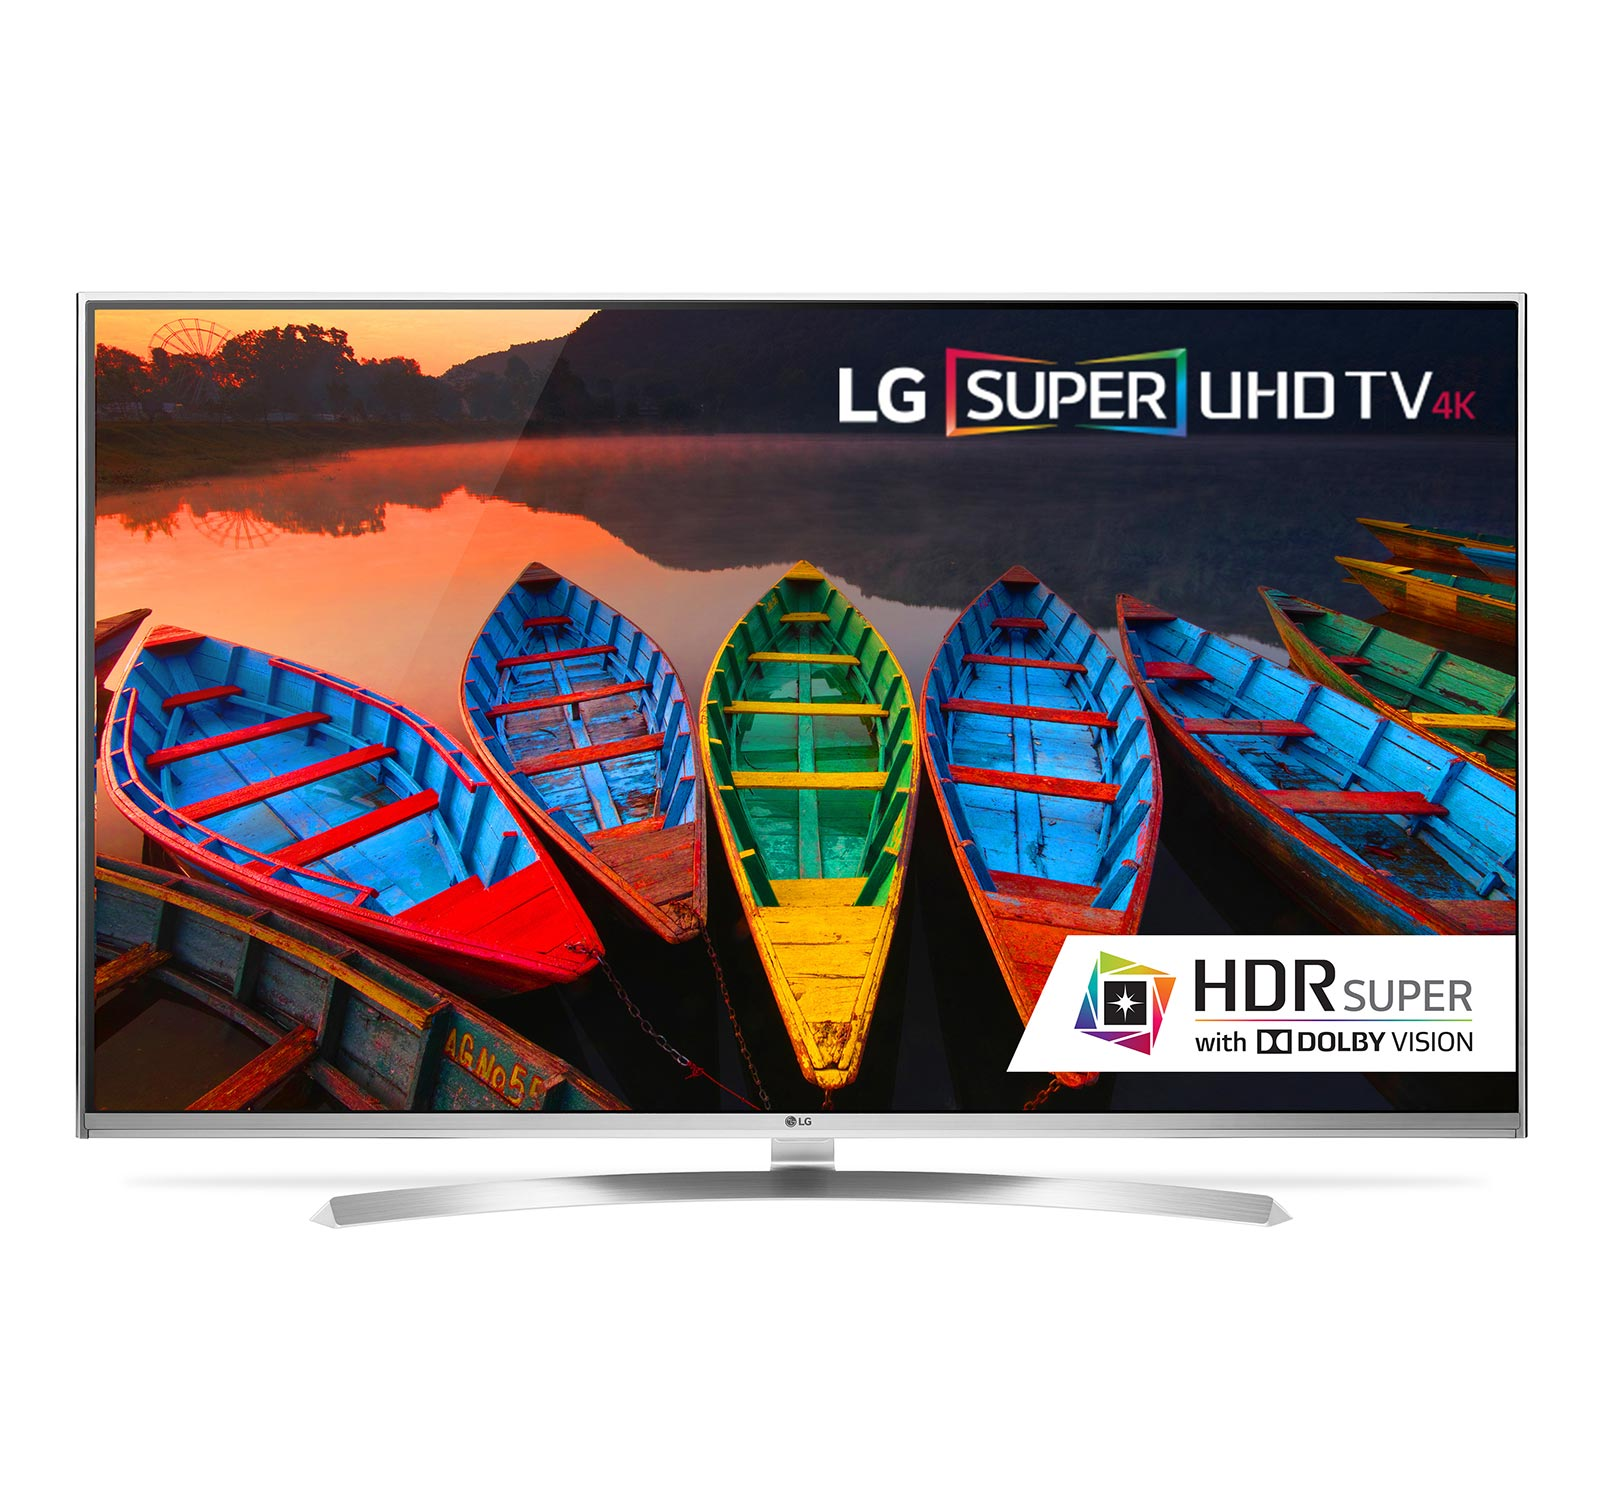 "LG 55UH8500 55"" 4K Super UHD Smart LED TV w/webOS 3.0 HDR Super w/Dolby Vision"